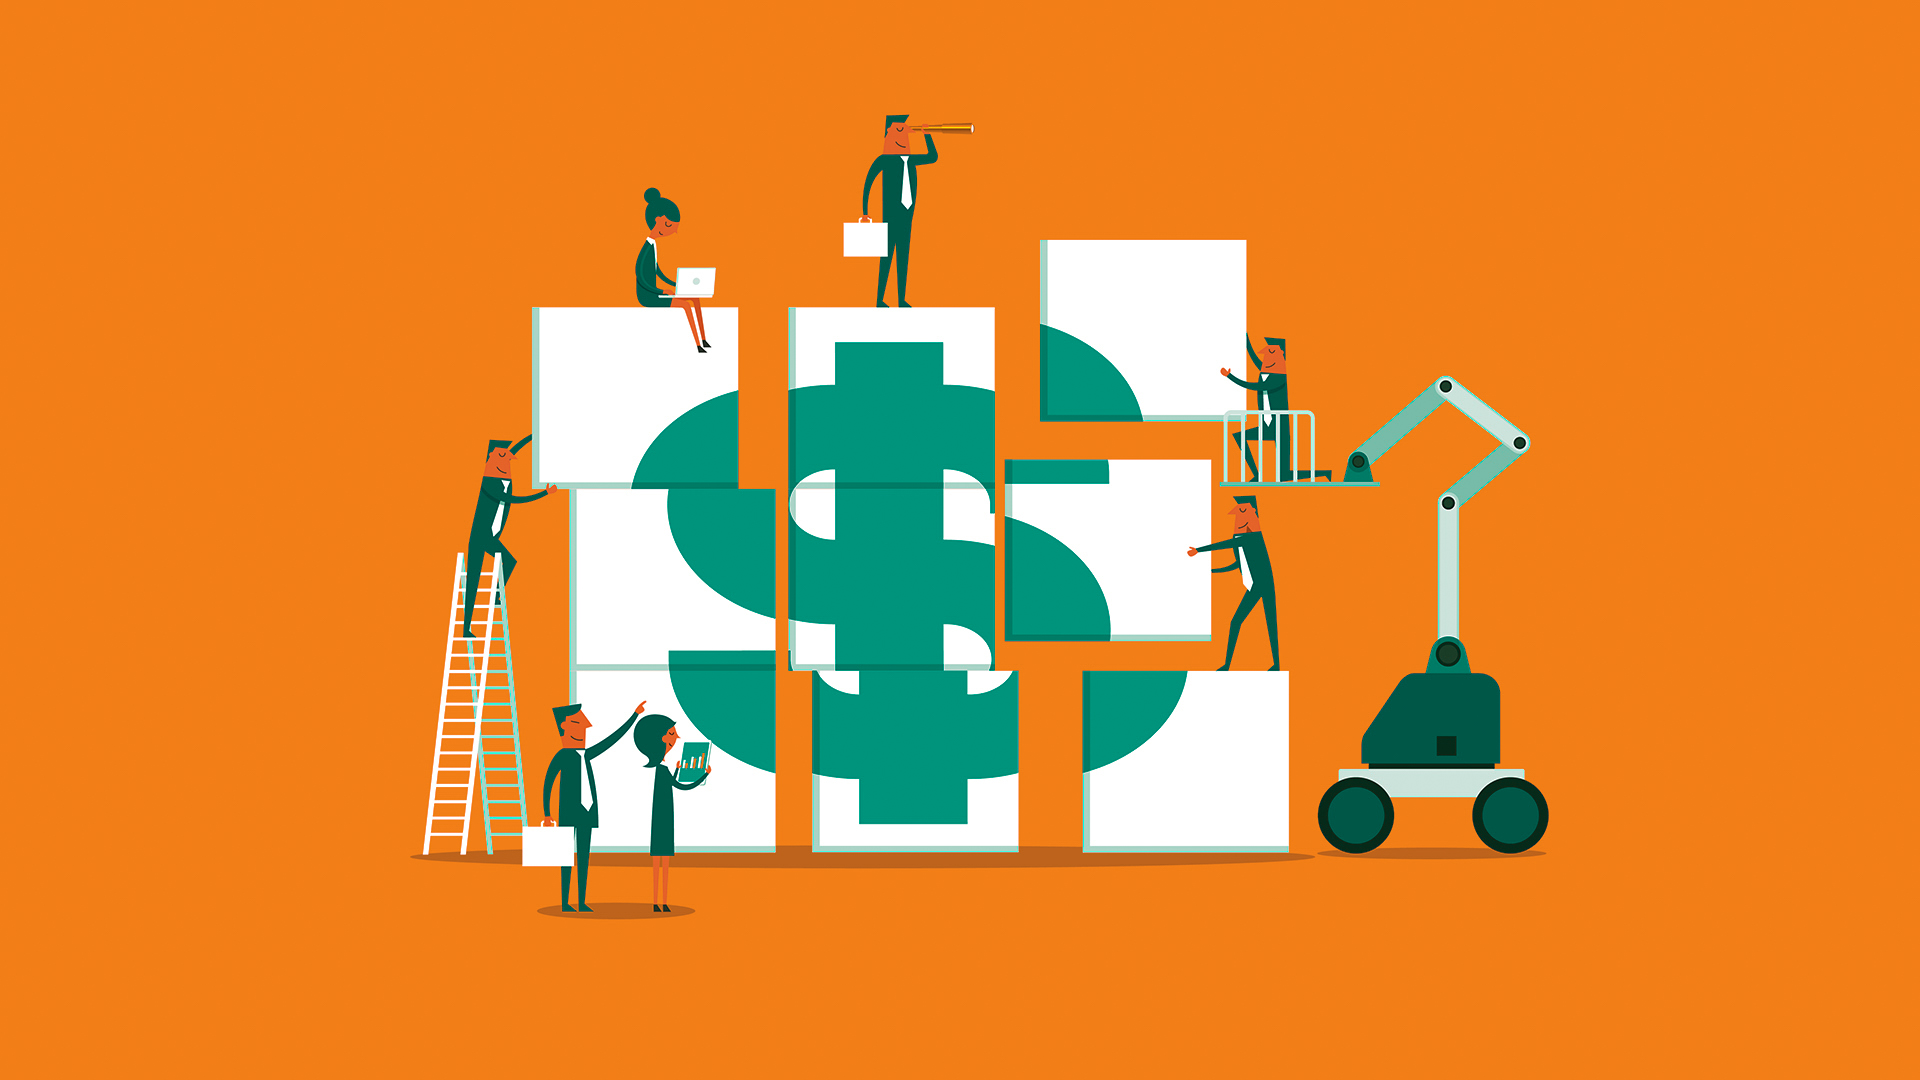 Illustration of a group of people moving pieces of a dollar sign